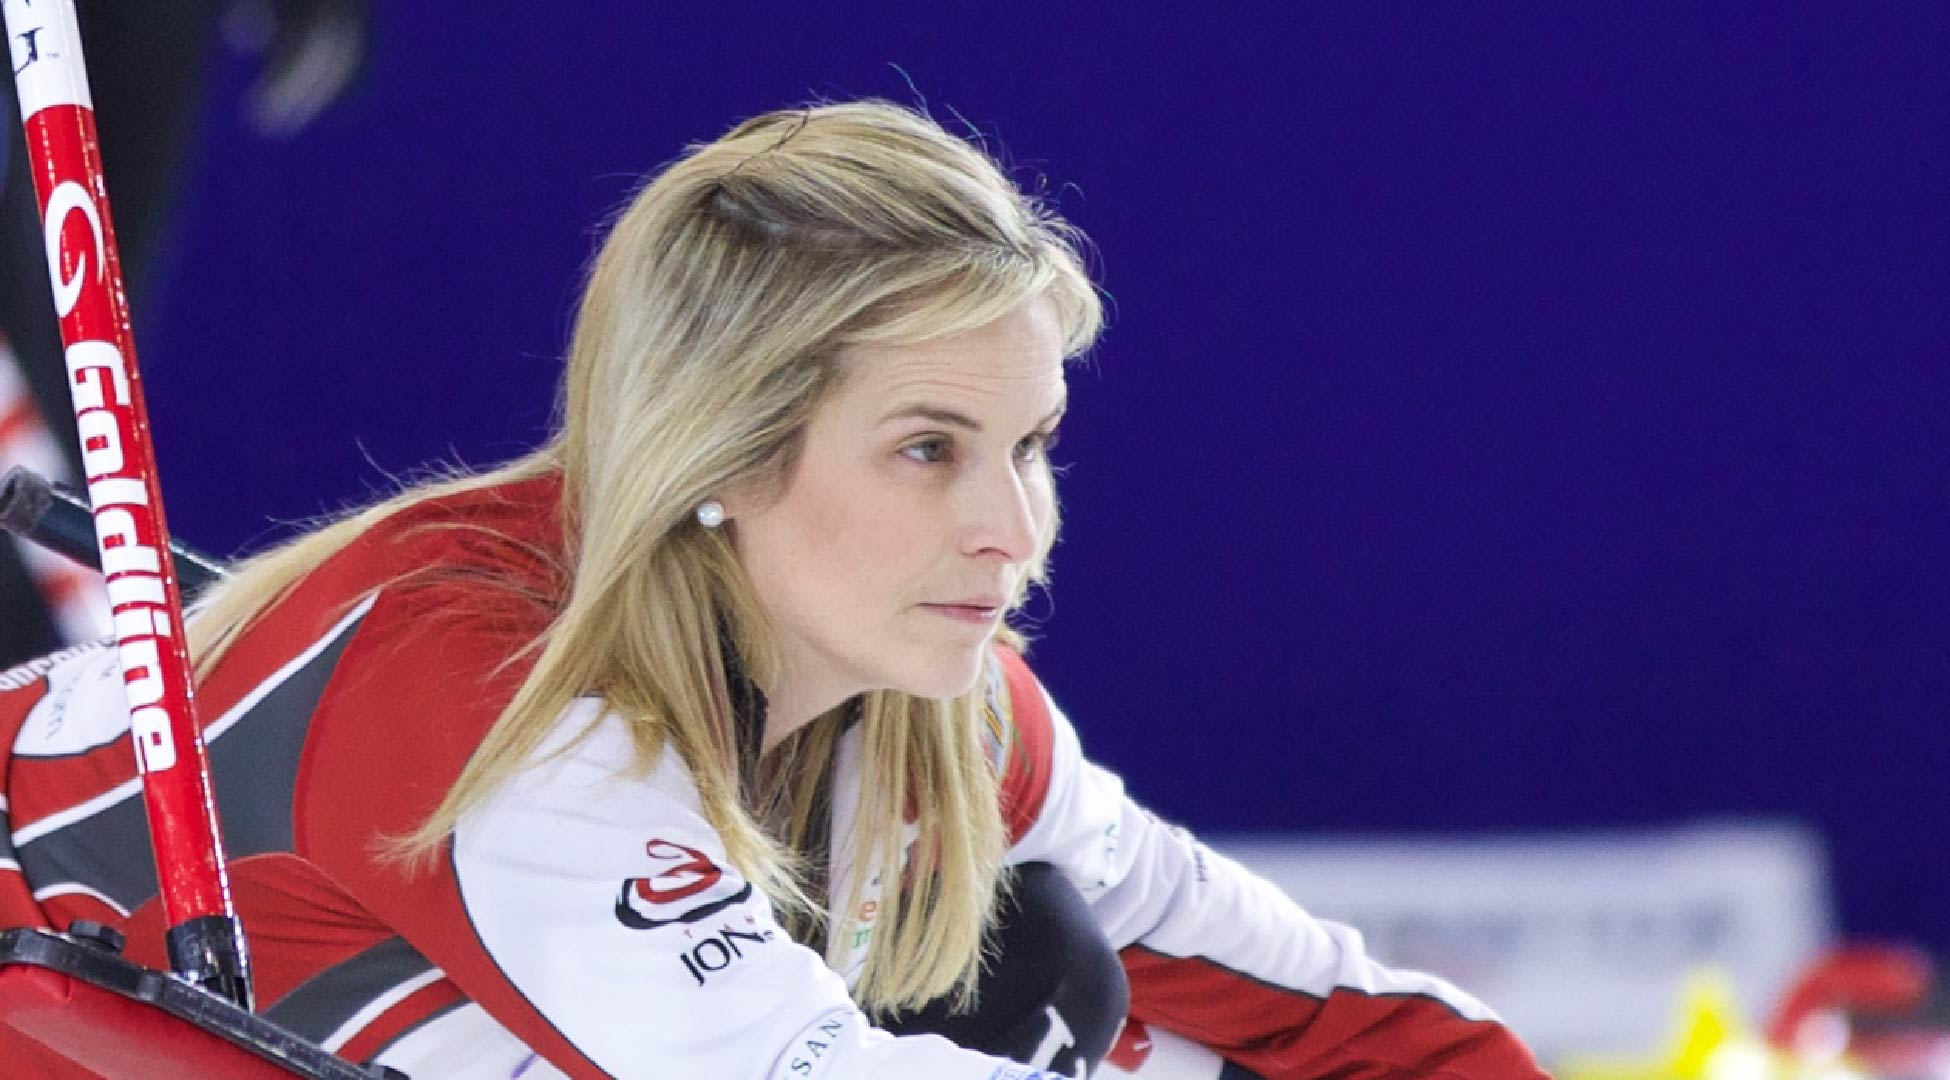 Jennifer Jones, Team Jennifer Jones, Photo Credit: Sportsnet